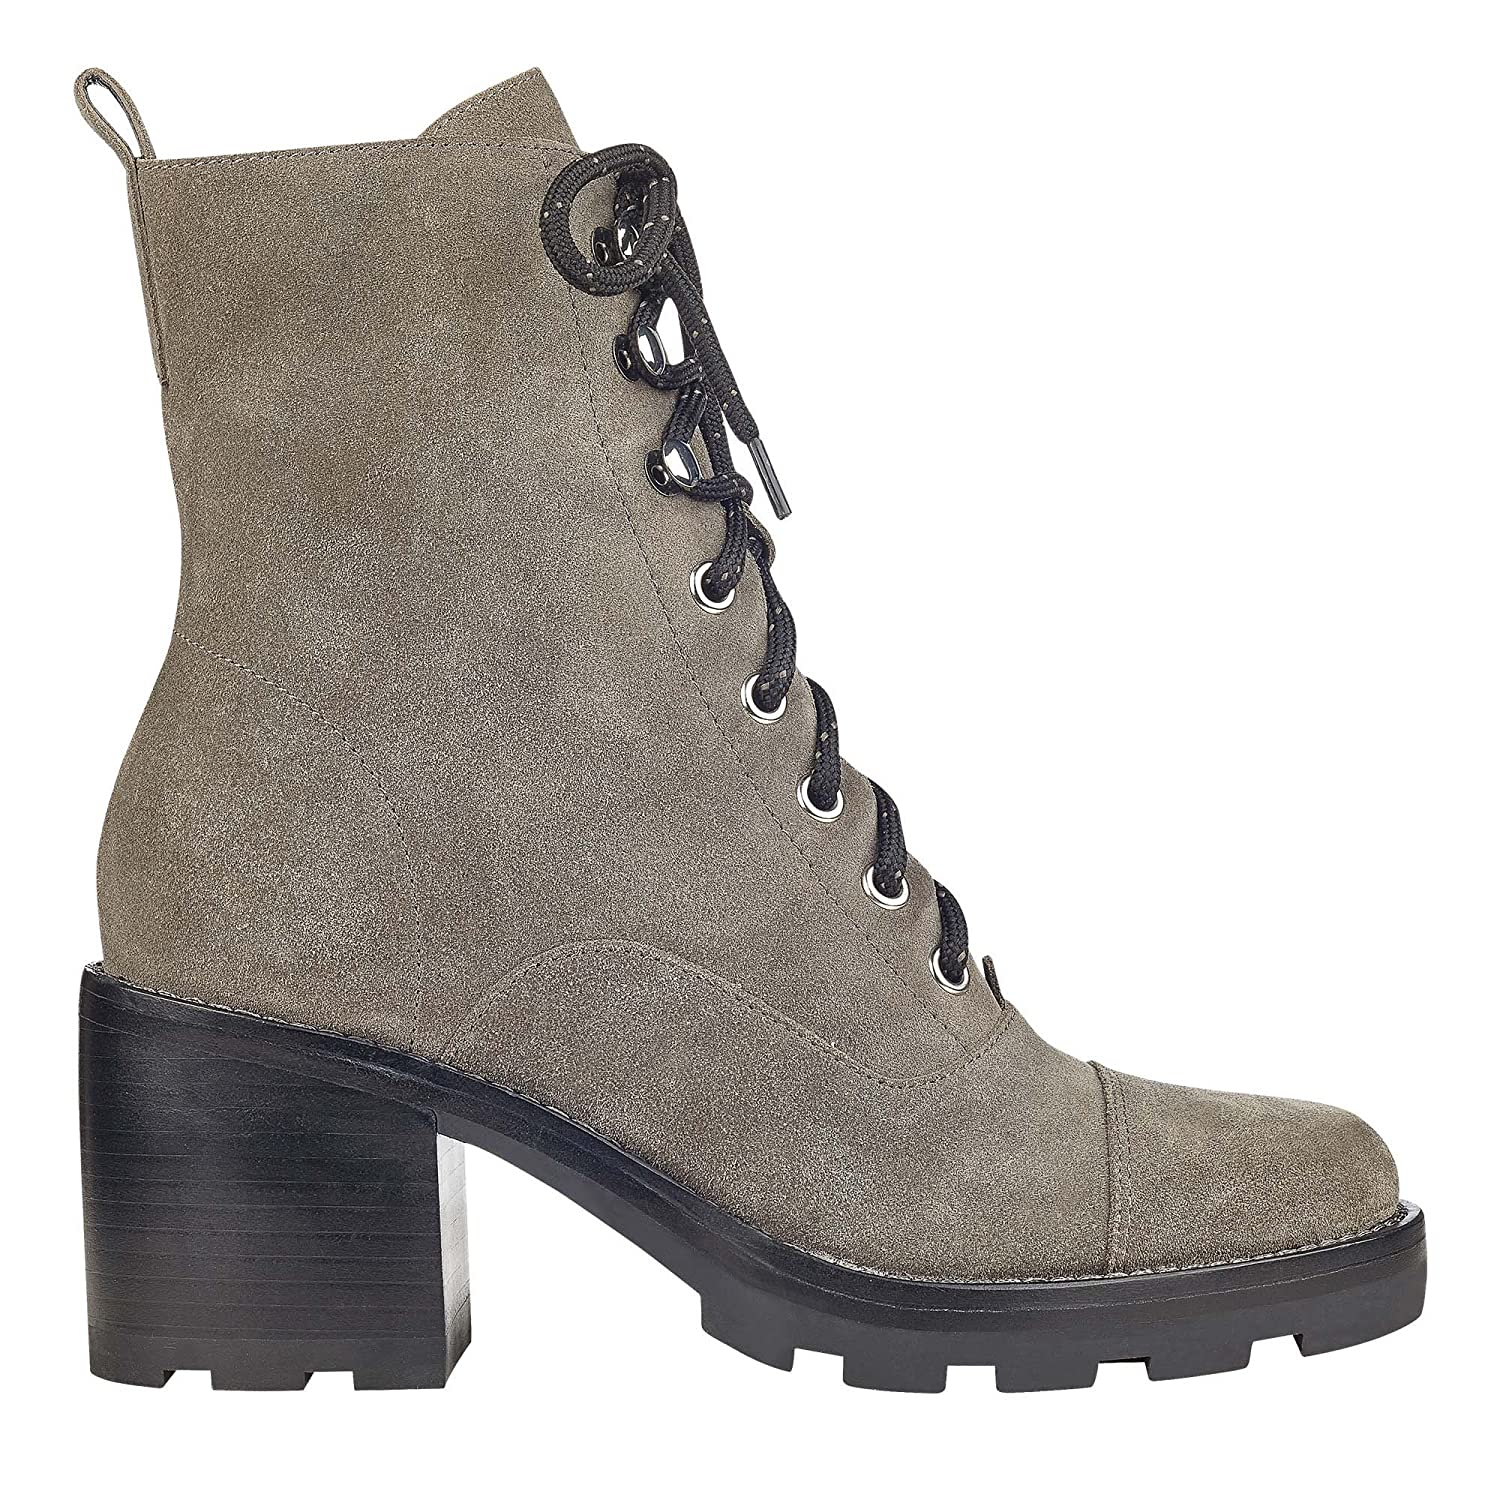 Marc Fisher Womens Wanya Suede Almond Toe Ankle Fashion Boots B079YWVG3T 6.5 B(M) US|Grey Suede